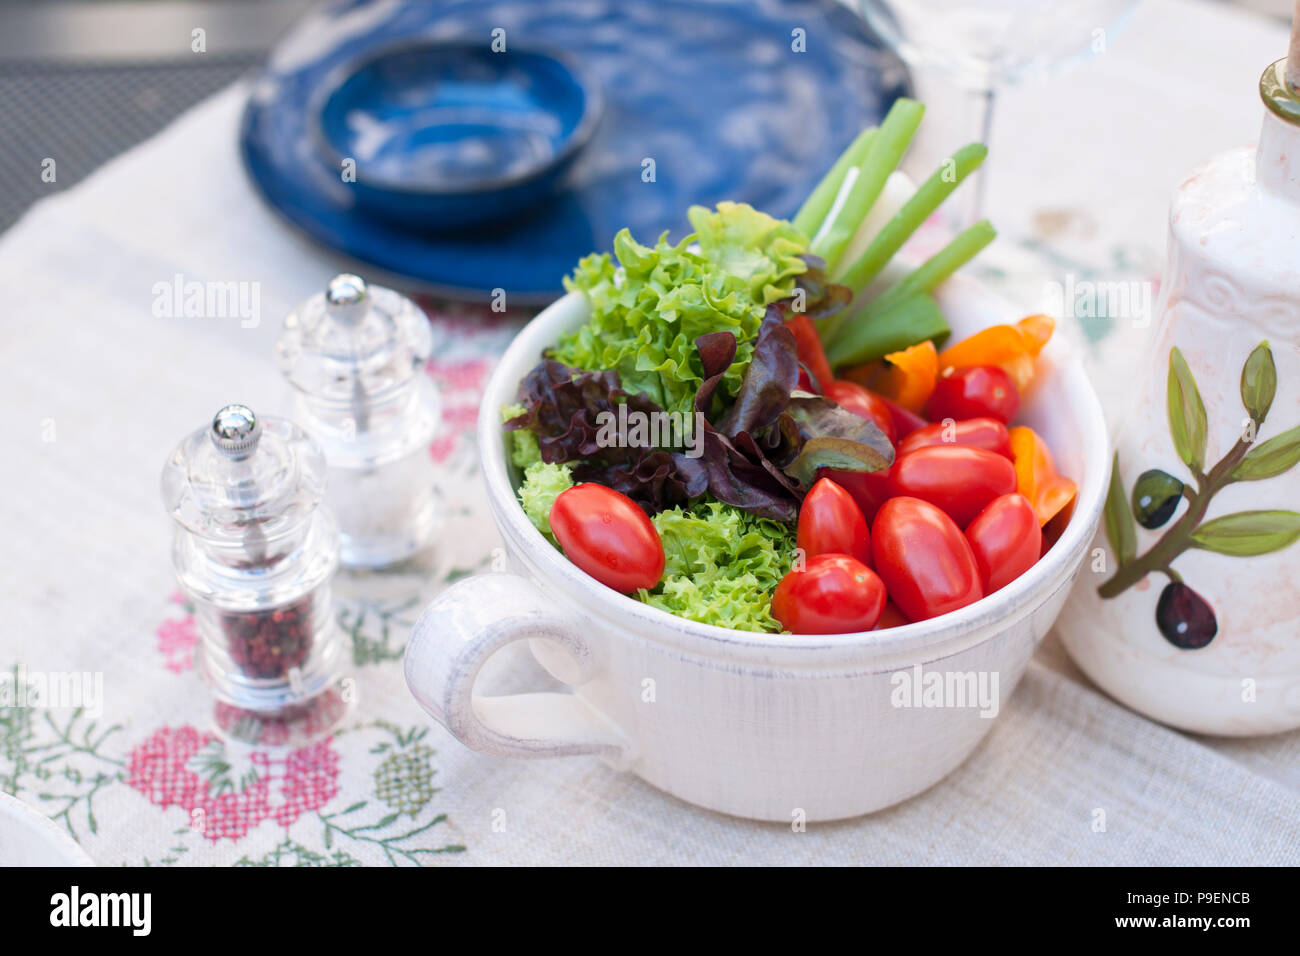 Vegetable Salad In A Ceramic Plate Lunch In The Open Air